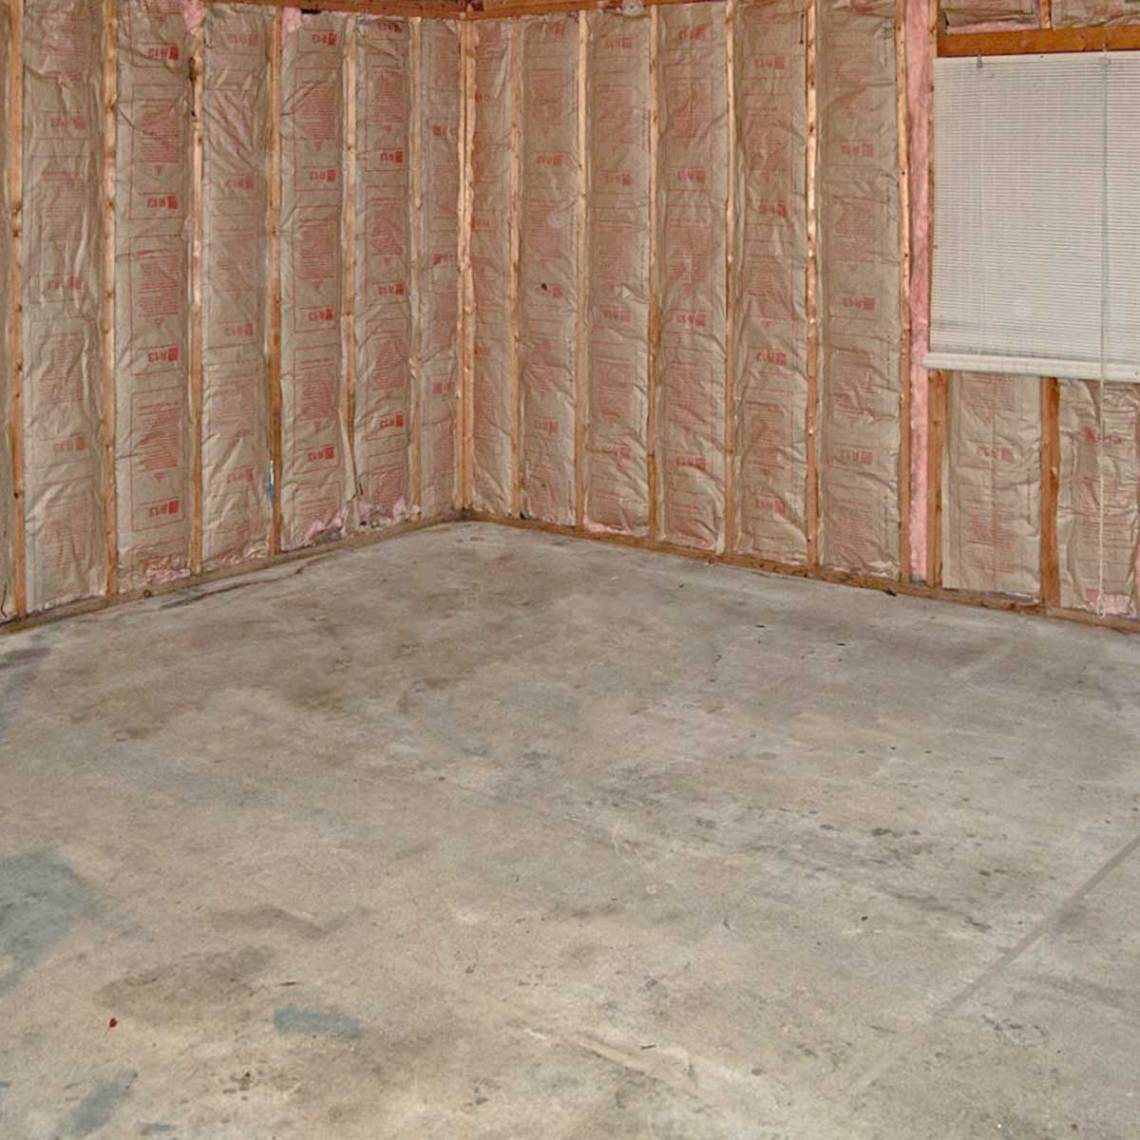 Soundproofing A Garage Be Sure To Insulate The Structure Of The Building This Will Help All To The Overall Stc Rating Of The Structure